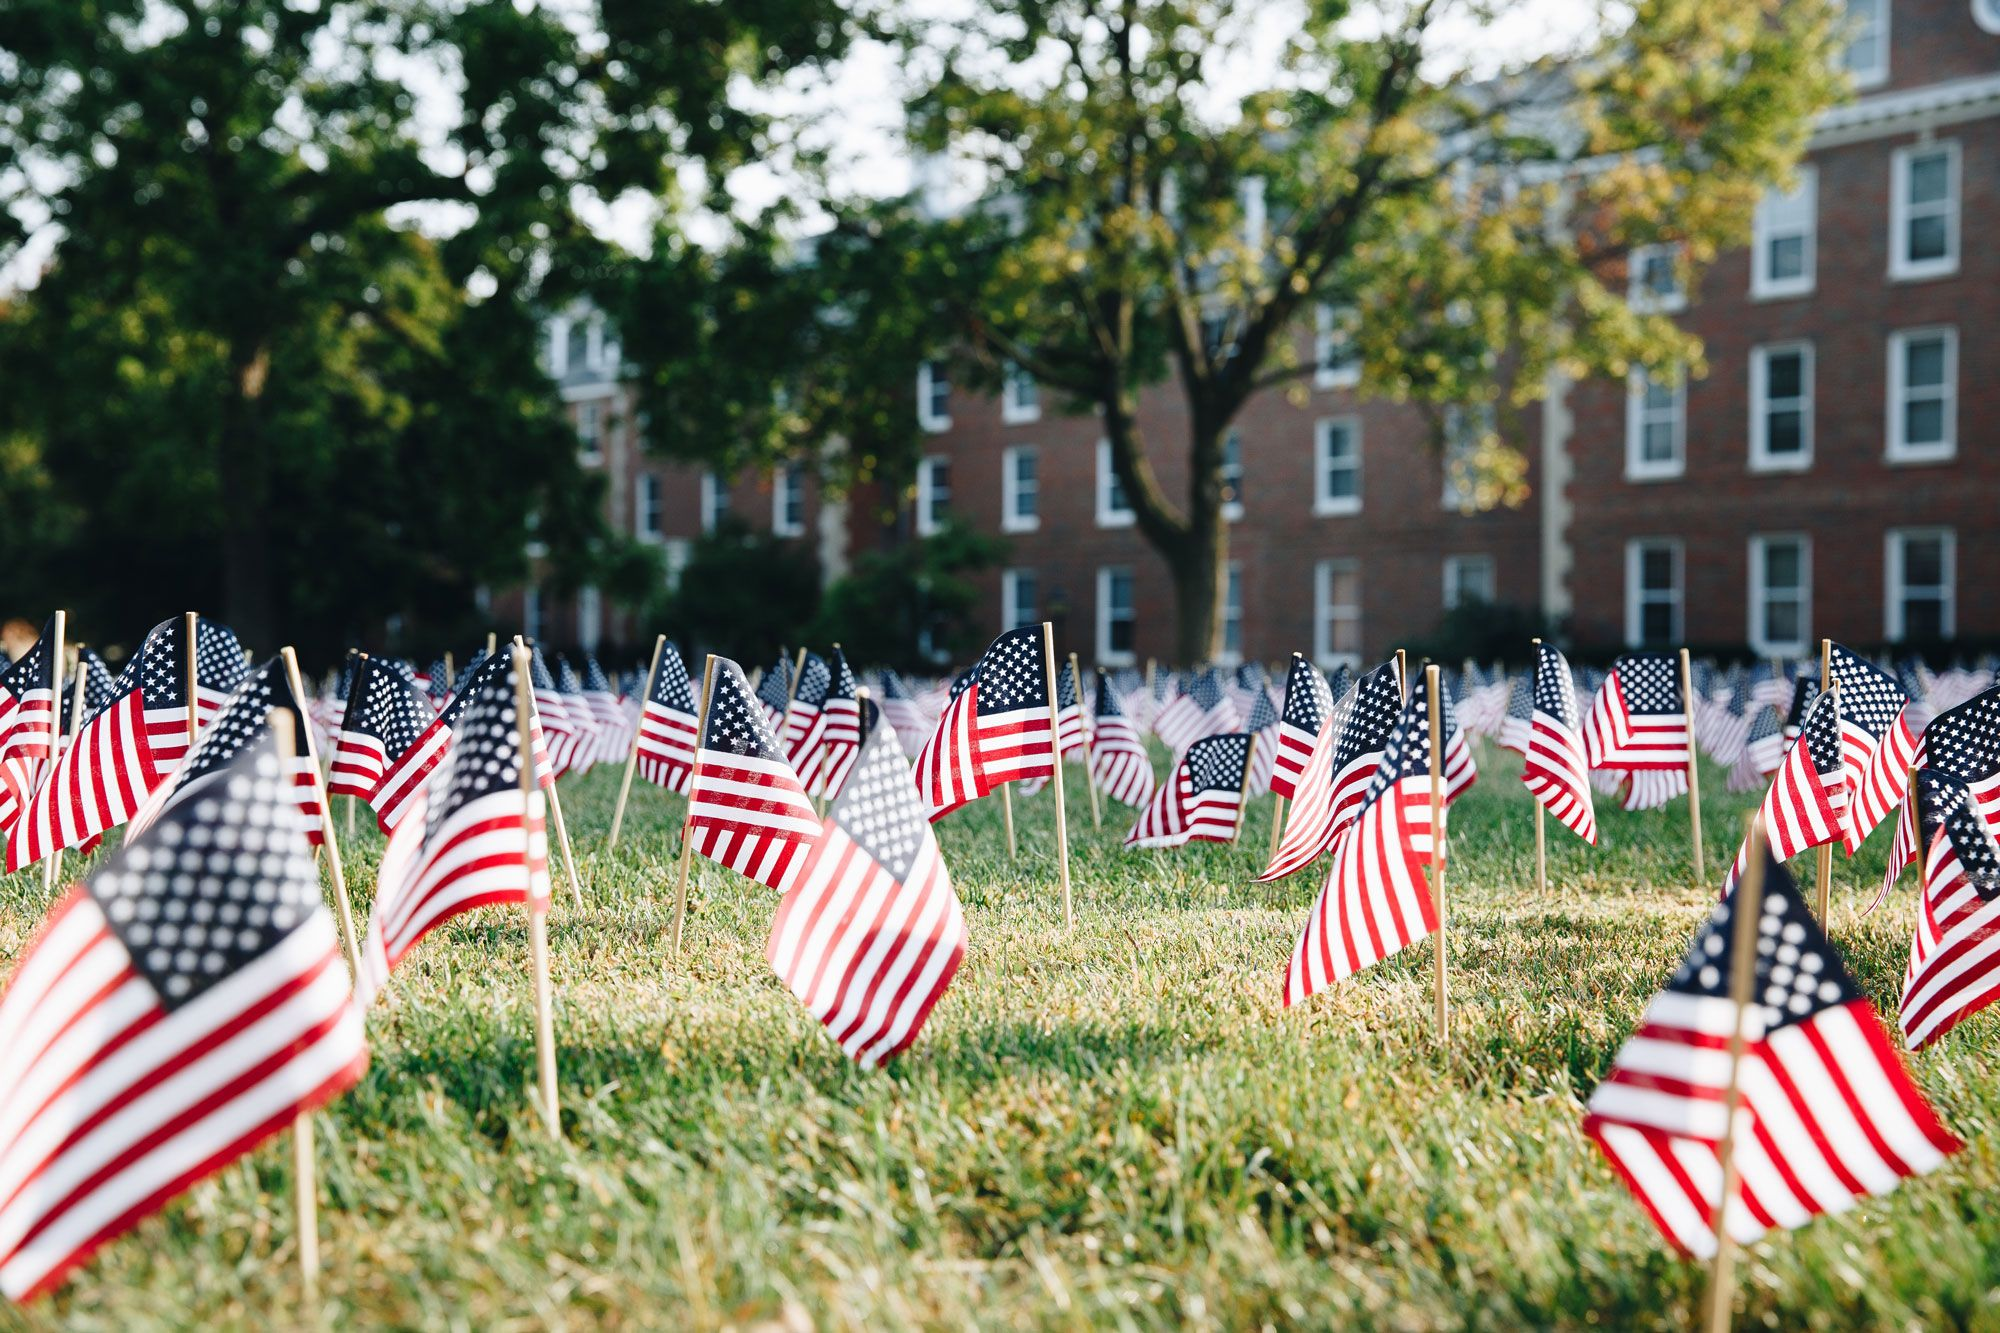 In 2016 the Wheaton College Young Americans for Freedom put together this moving display of flags representing each of the 2,996 precious lives that were lost on September 11, 2001.